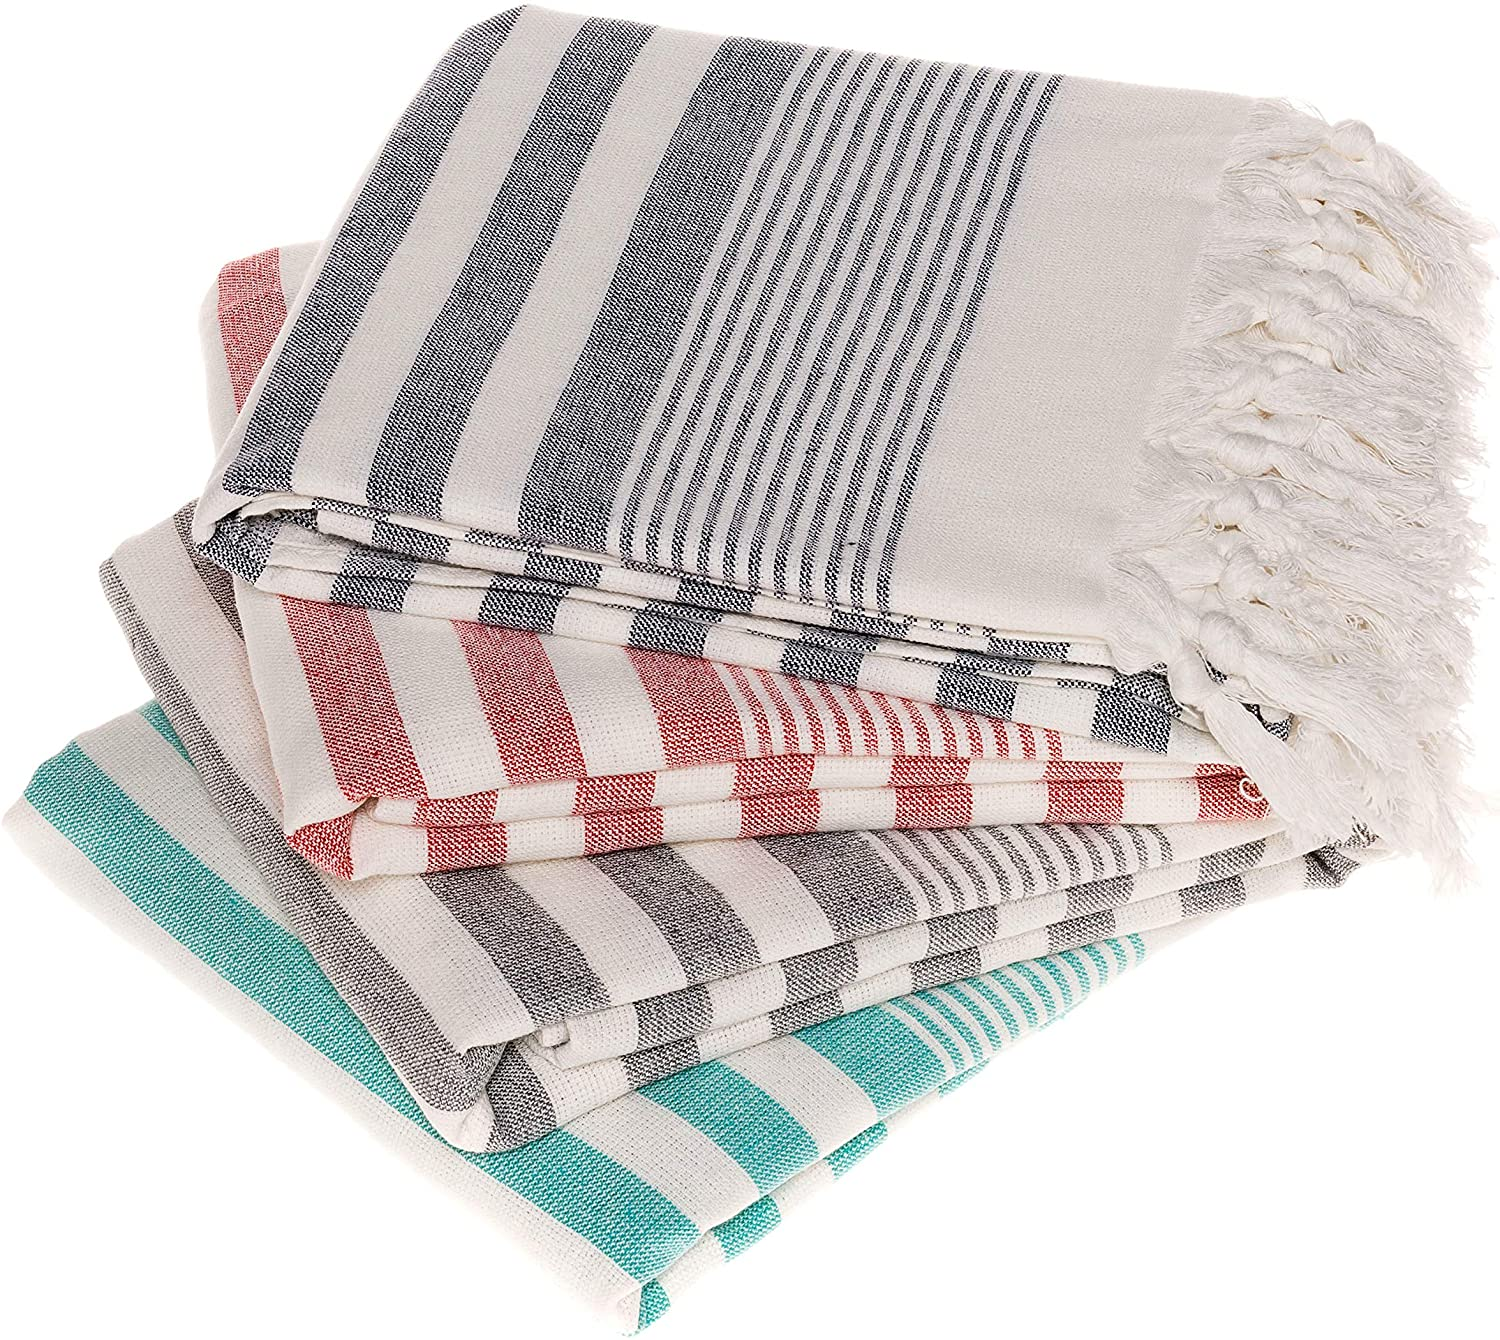 Turkish Beach Towels Set of 4 Beach Towel Oversized 100% Cotton